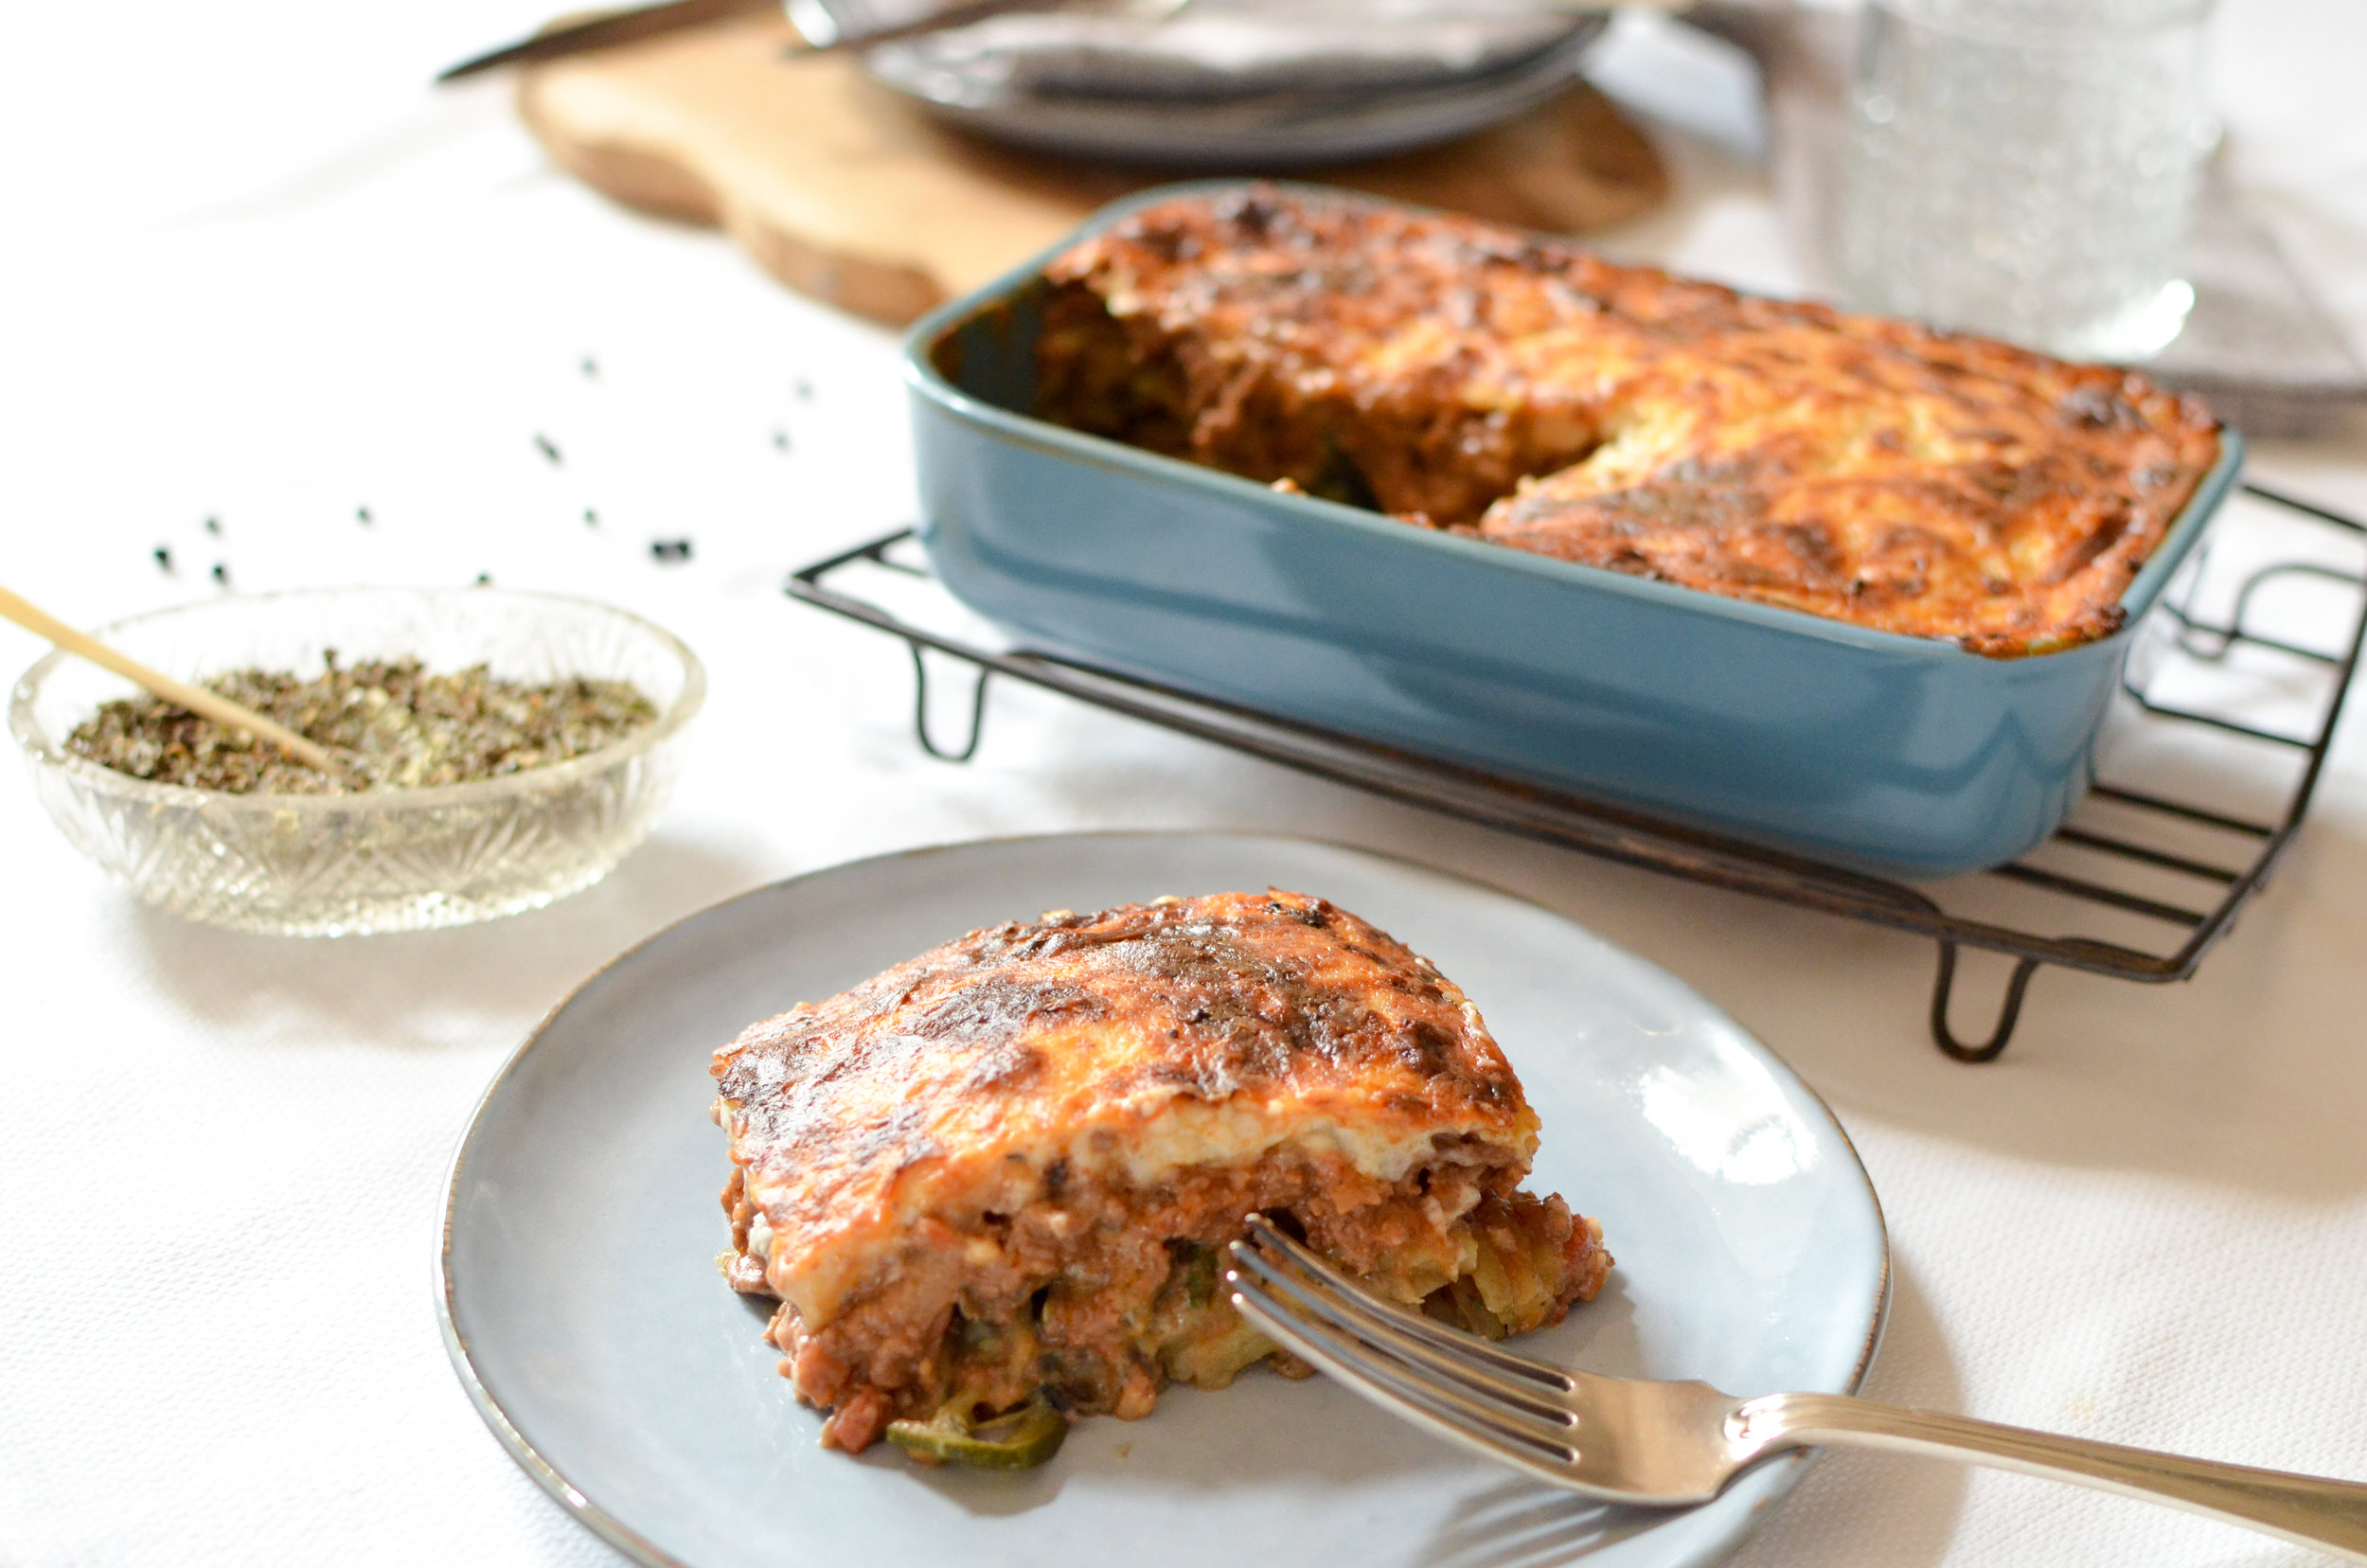 Ingredients :  Mousaka (minced beef,   eggplant, zucchini, potato, tomato cubes, tomato concentrate, onion, garlic, thyme, cinnamon, clove, olive oil, salt, pepper) ; Béchamel ( butter, flour, milk, parmesan,  nutmeg, pepper, salt).